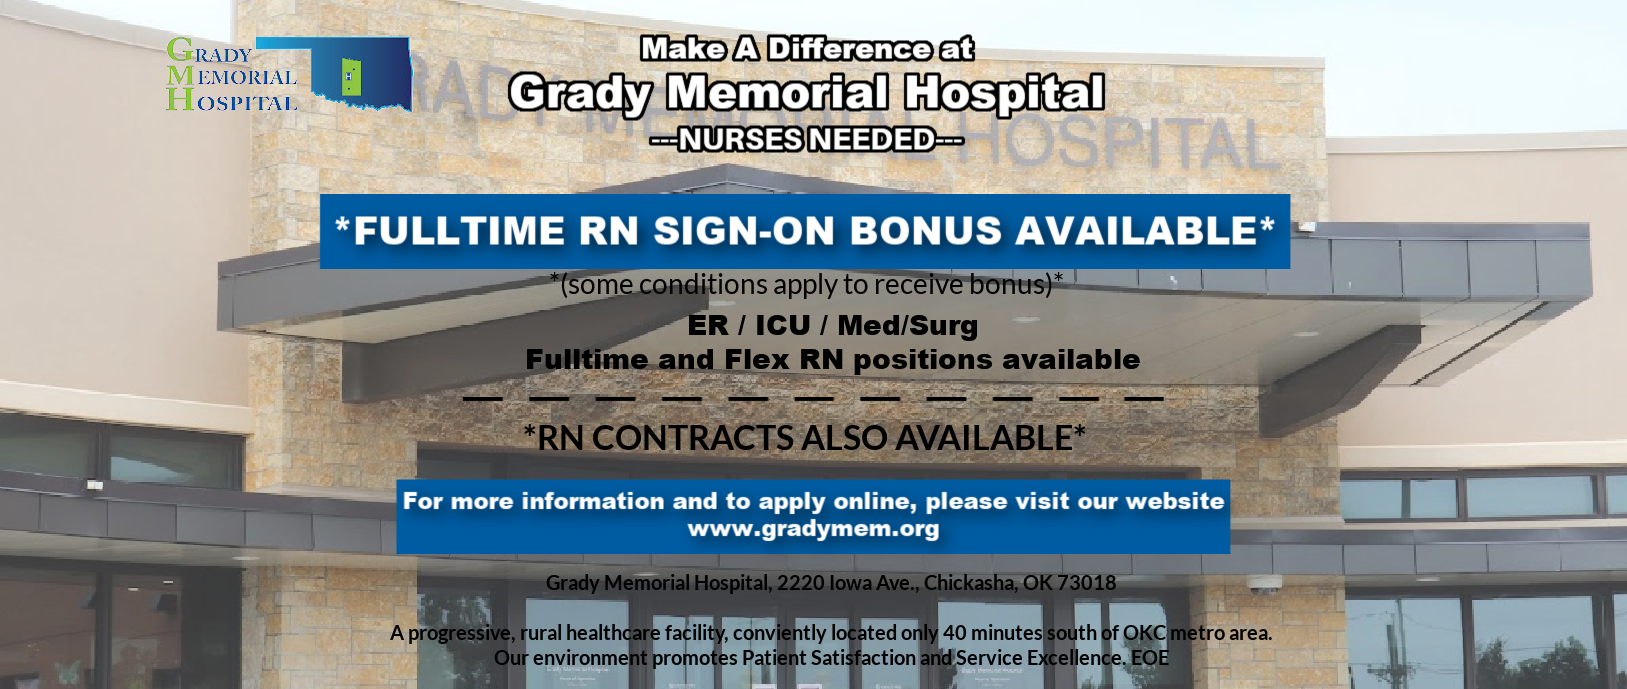 Banner picture of a female nurse wearing scrubs, a medical head cap, mask, face shield, and gloves. She is crossing her arms, Banner says: GRADY MEMORIAL HOSPTIAL   NURSES NEEDED-APPLY ONLINE TODAY Grady Memorial Hospital needs LPN'S and RN's for all areas and shifts. Full time, Part, and PRN (Flex) Available  Full Time and Part Time Positions wages are commensurate with experience  -RN Flex rate: $32.50 -LPN Flex rate: $24.60  Even one day per pay period can make a huge impact on giving our nursing staff a much needed break!